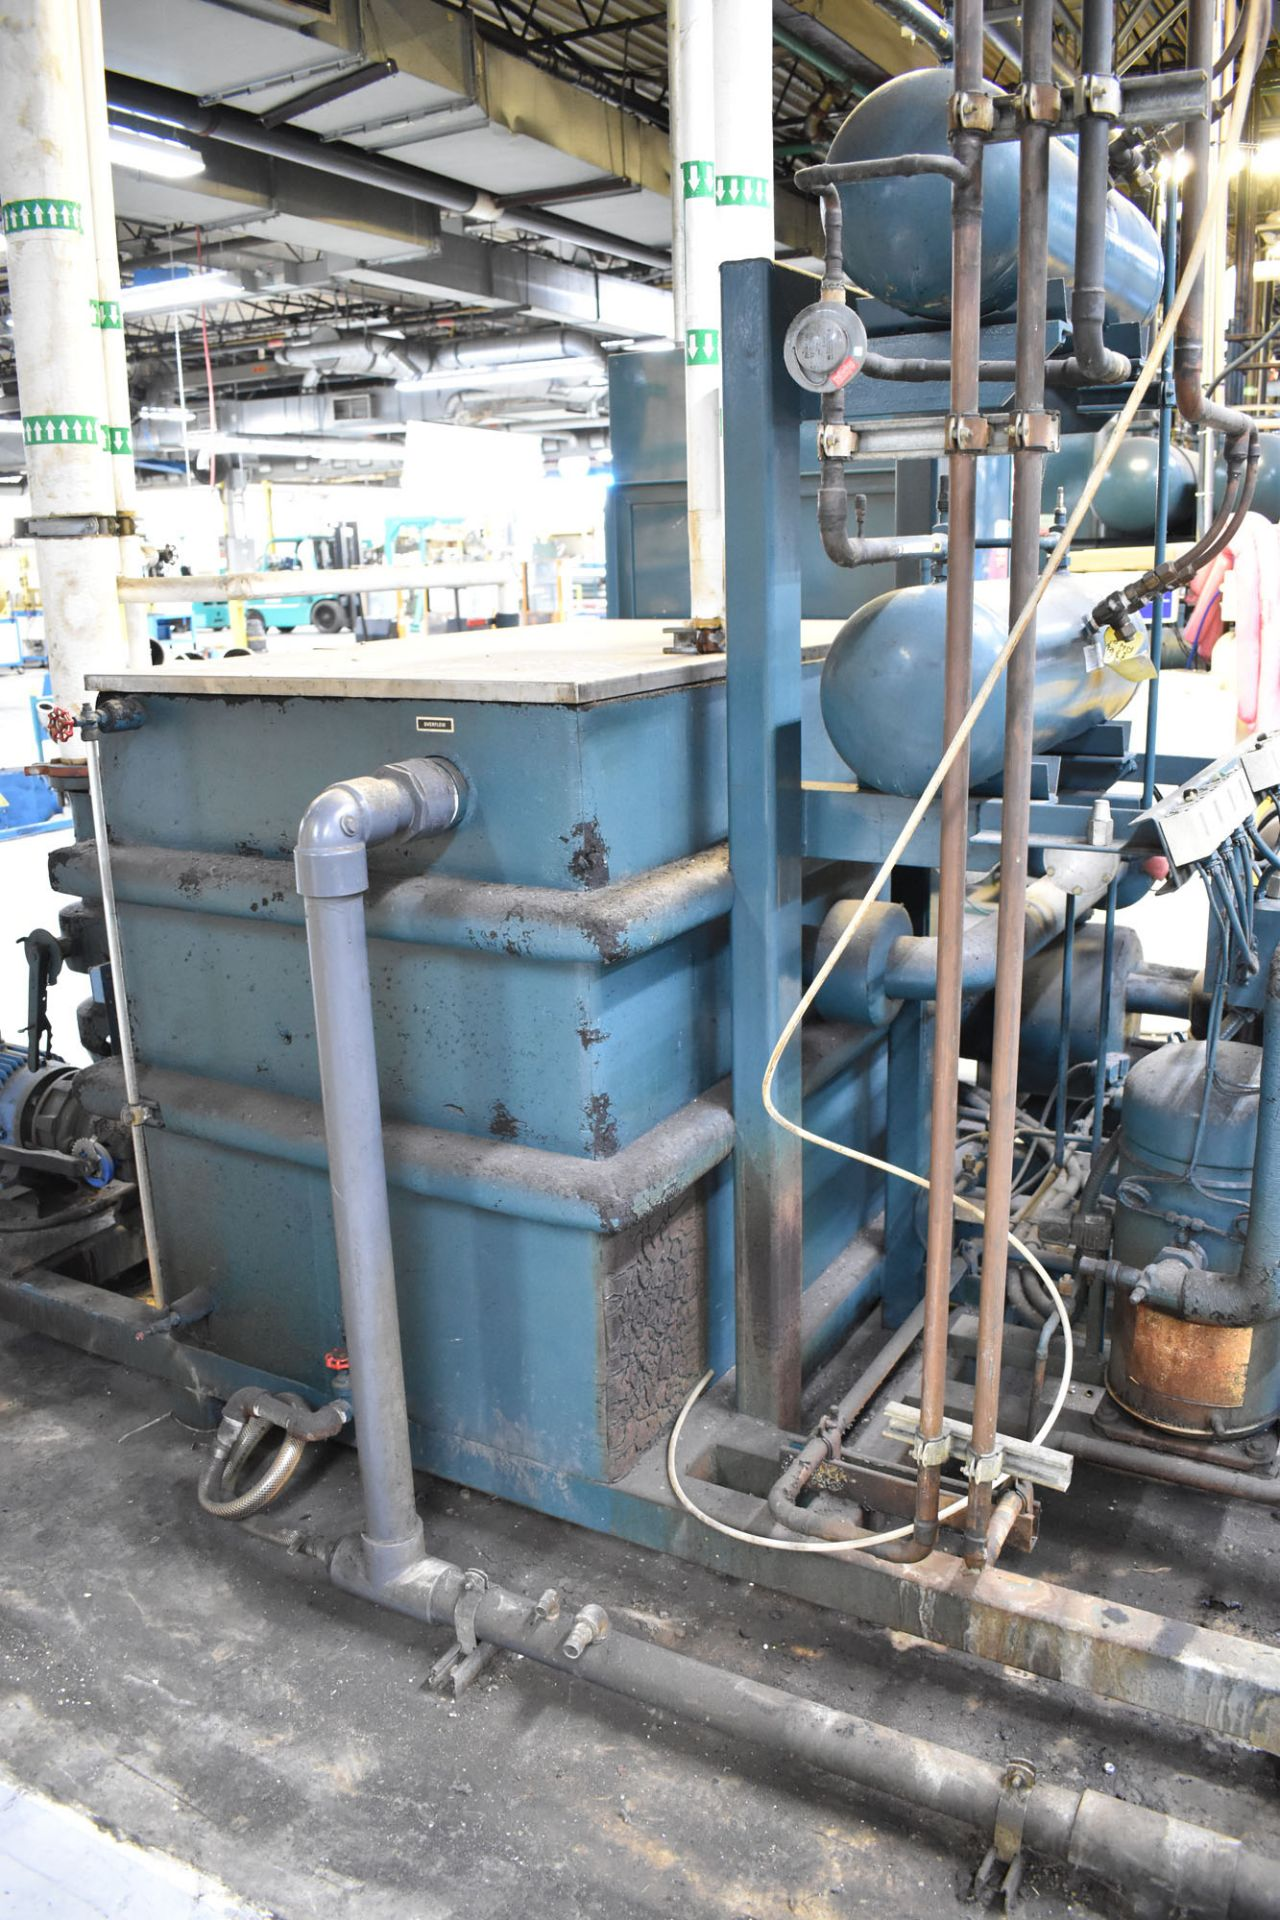 BERG AZ-30-2/1-3P-R SKID MOUNTED INDUSTRIAL CHILLER WITH 30 TON CAPACITY, 55 HP, BERG SC6 TOUCH- - Image 5 of 6